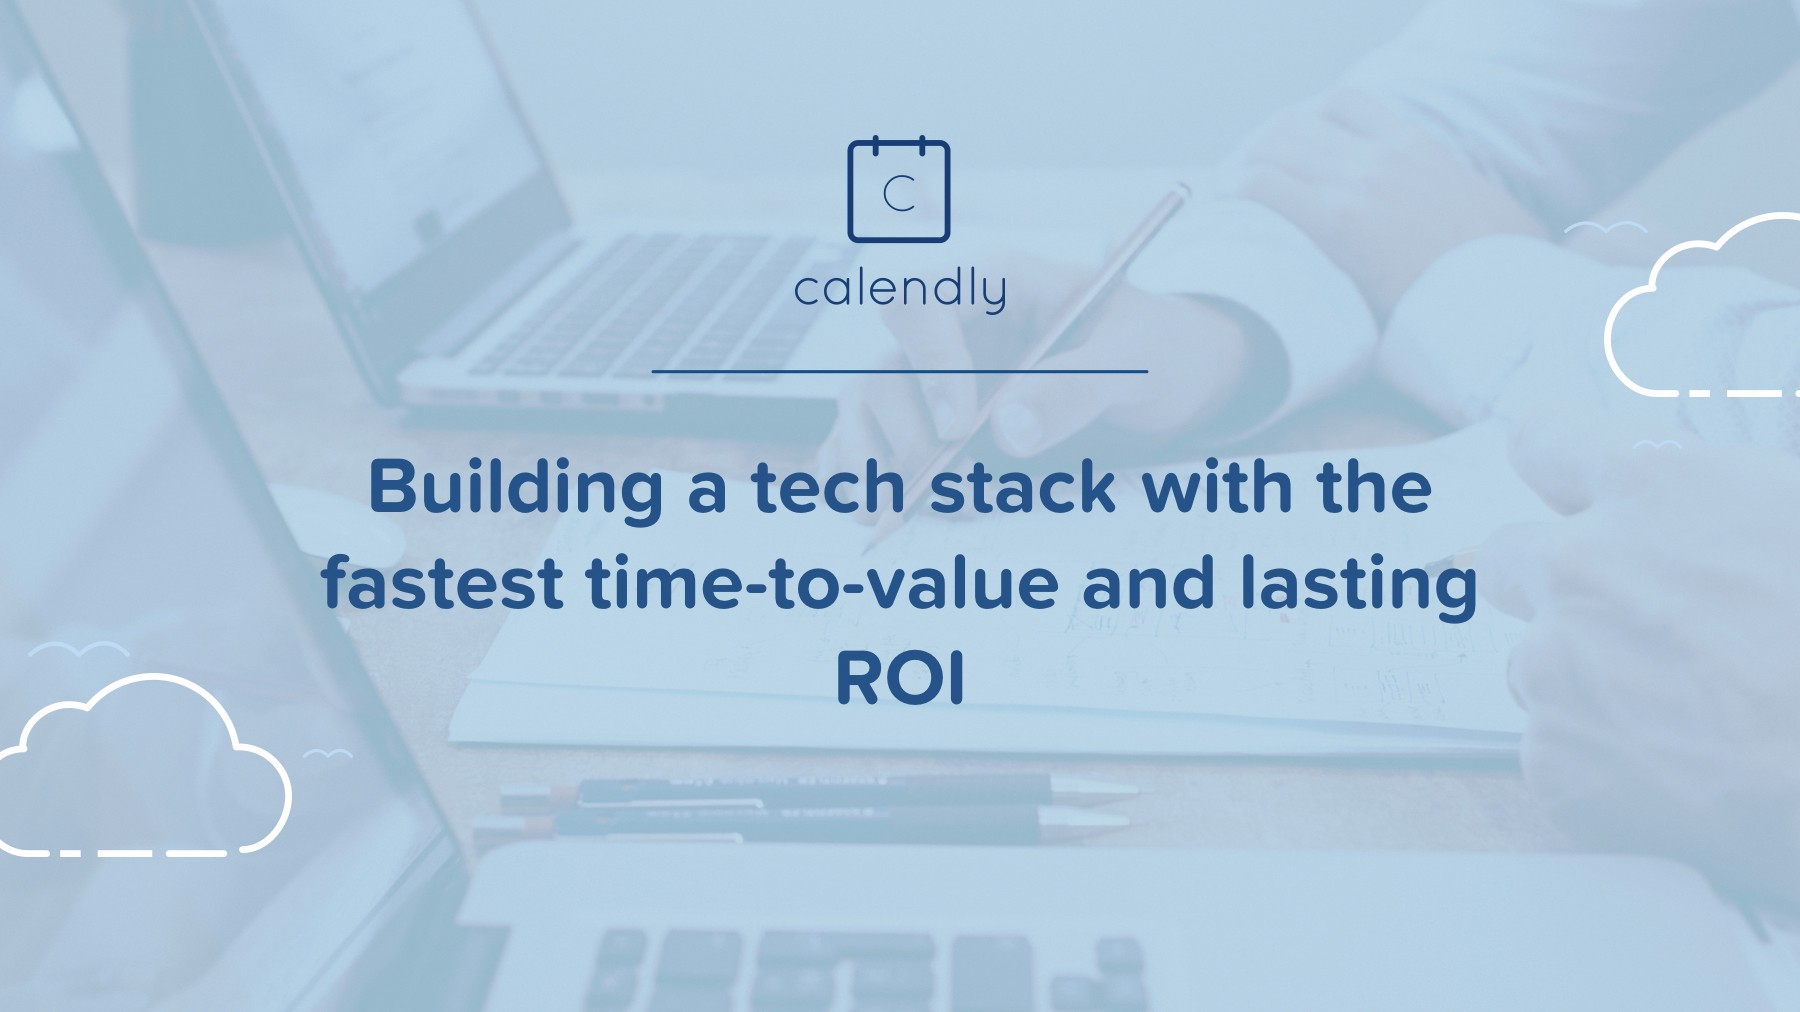 Building a tech stack with the fastest time-to-value and lasting ROI